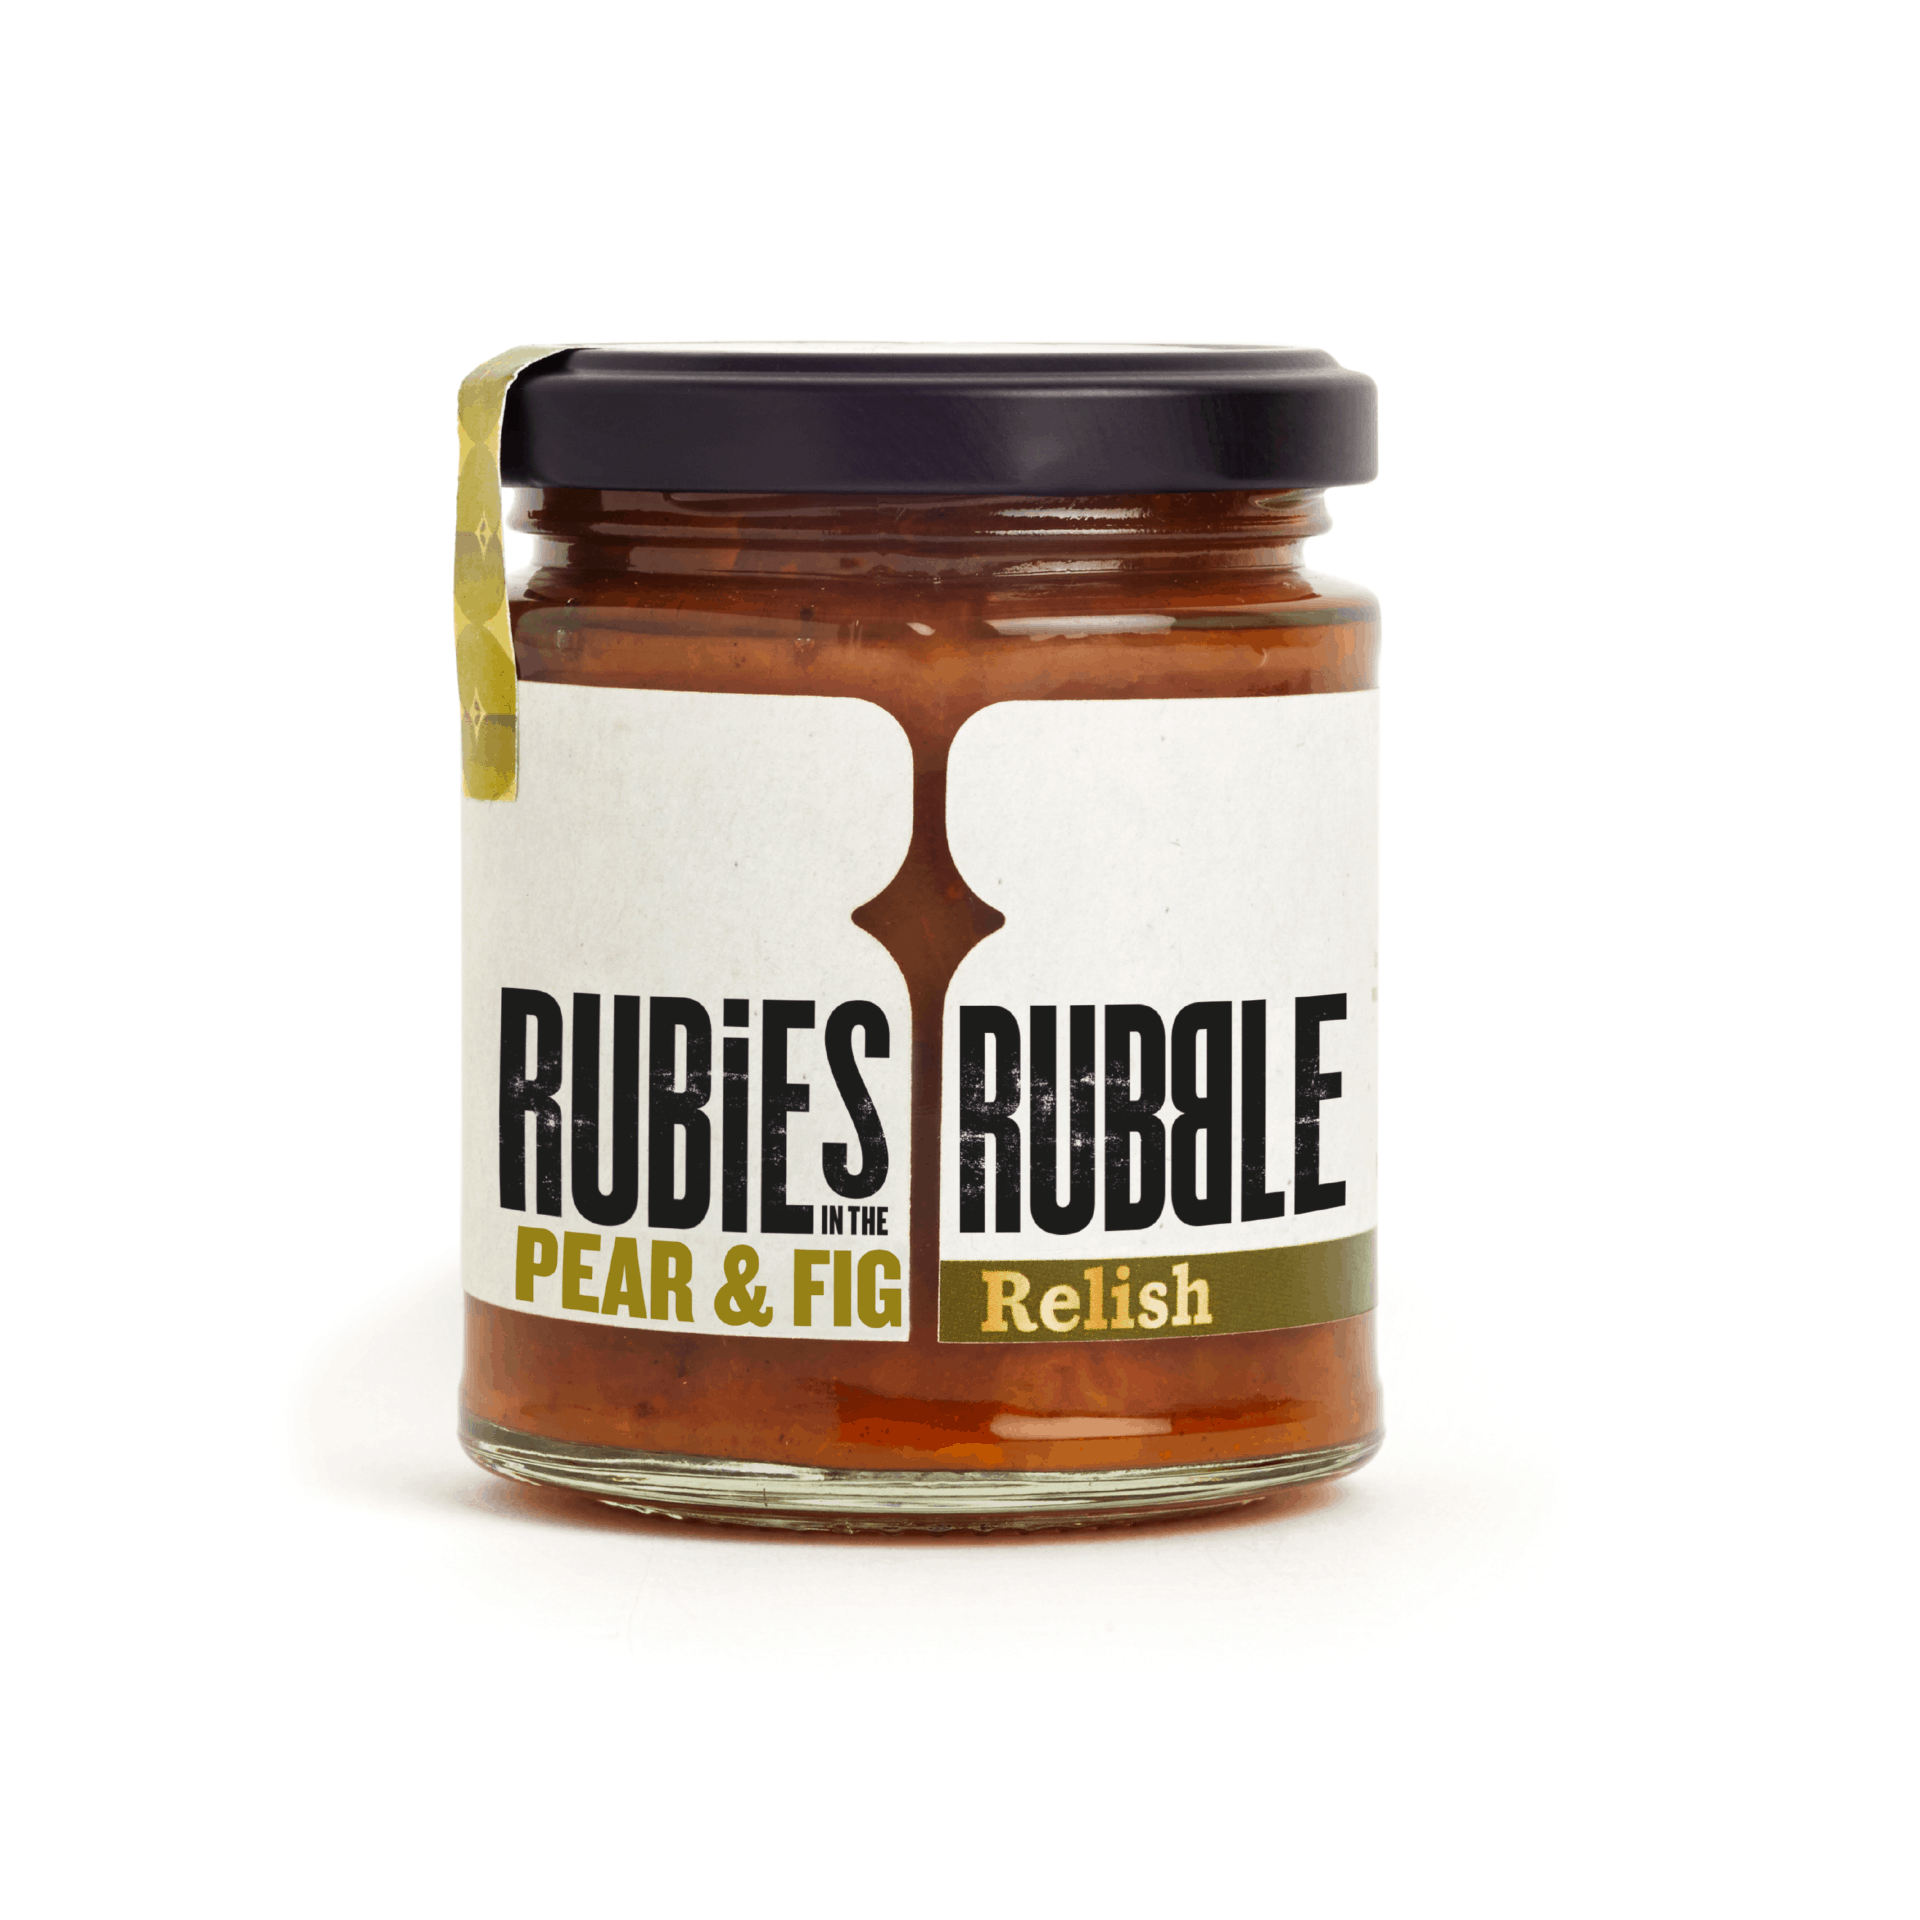 Rubies In The Rubble Pear & Fig Relish